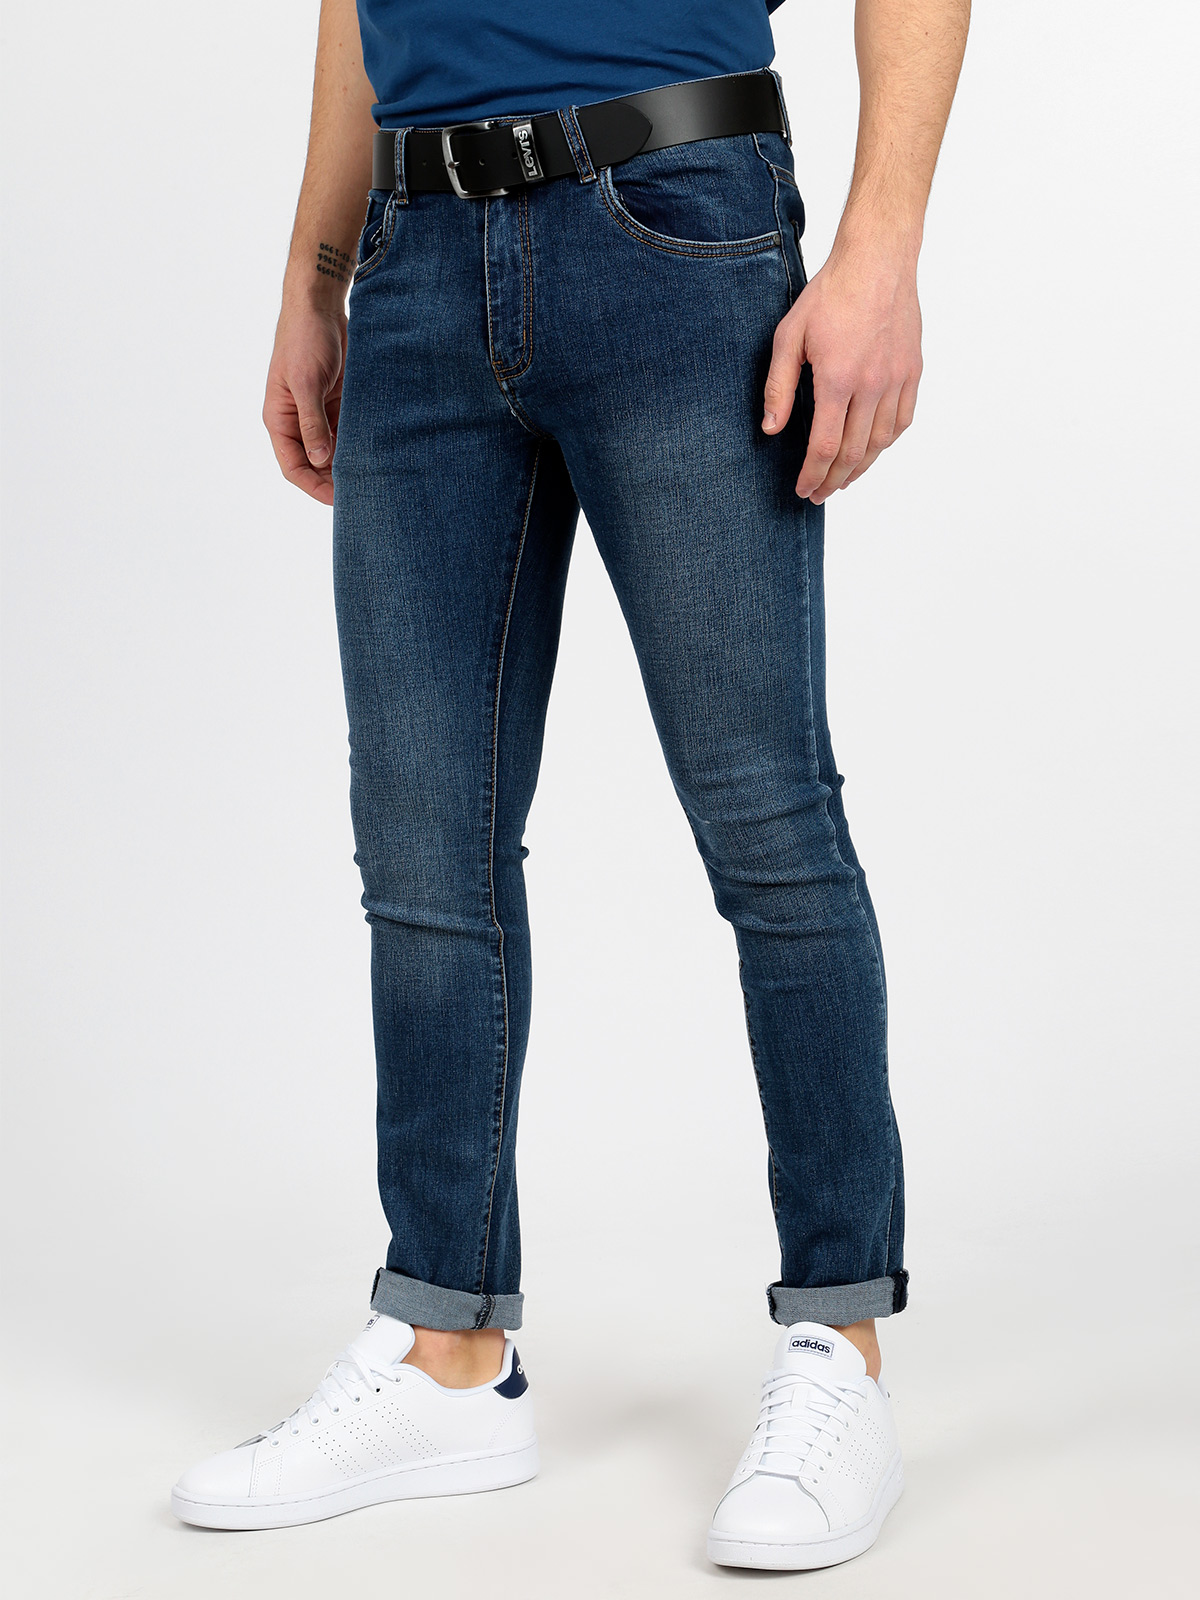 5 Pockets Jeans Straight Leg